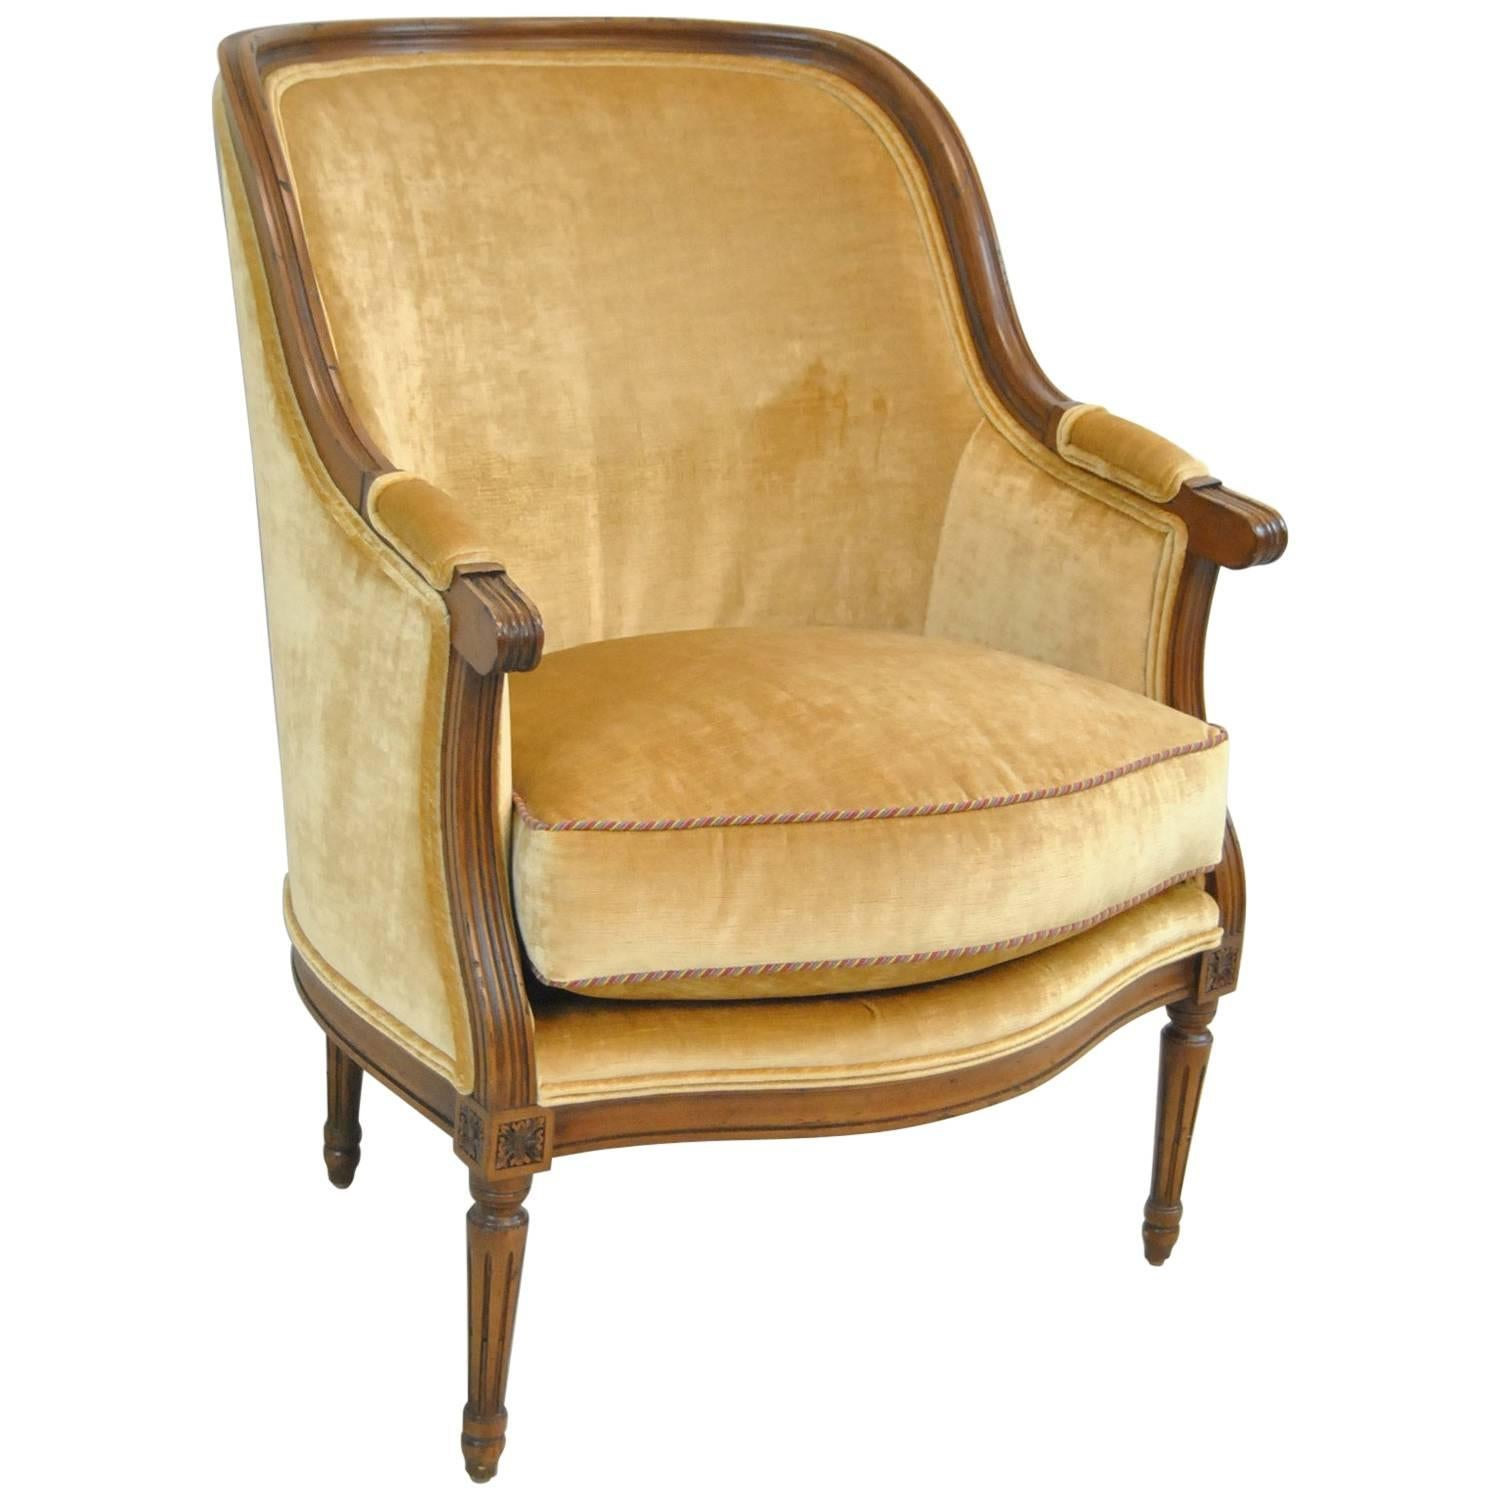 French Upholstered Bergere Chair by Isenhour Furniture For